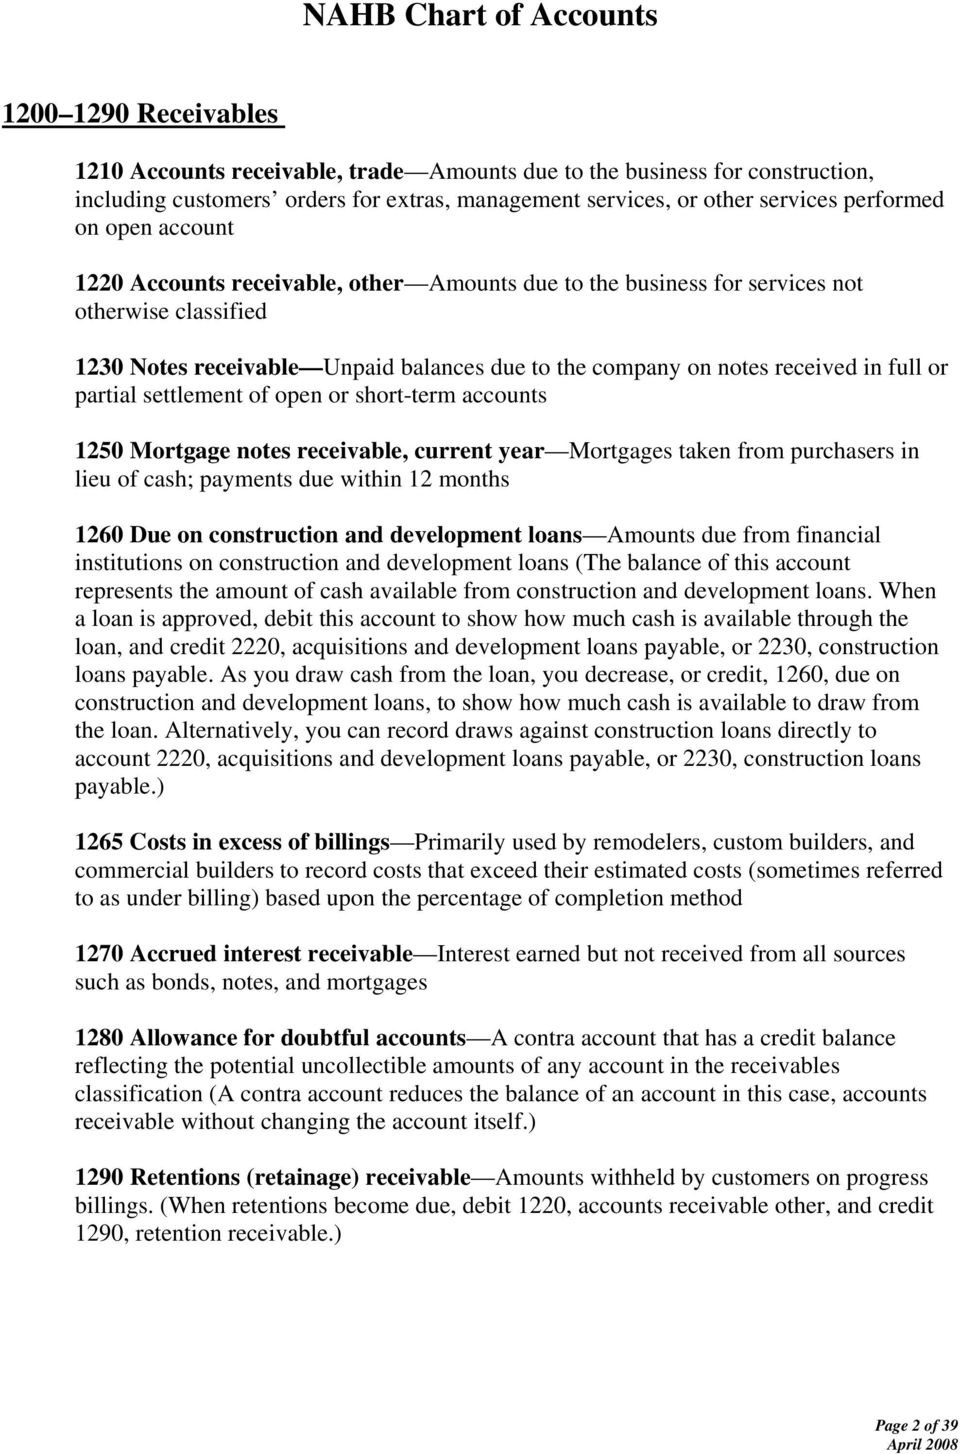 settlement of open or short-term accounts 1250 Mortgage notes receivable, current year Mortgages taken from purchasers in lieu of cash; payments due within 12 months 1260 Due on construction and